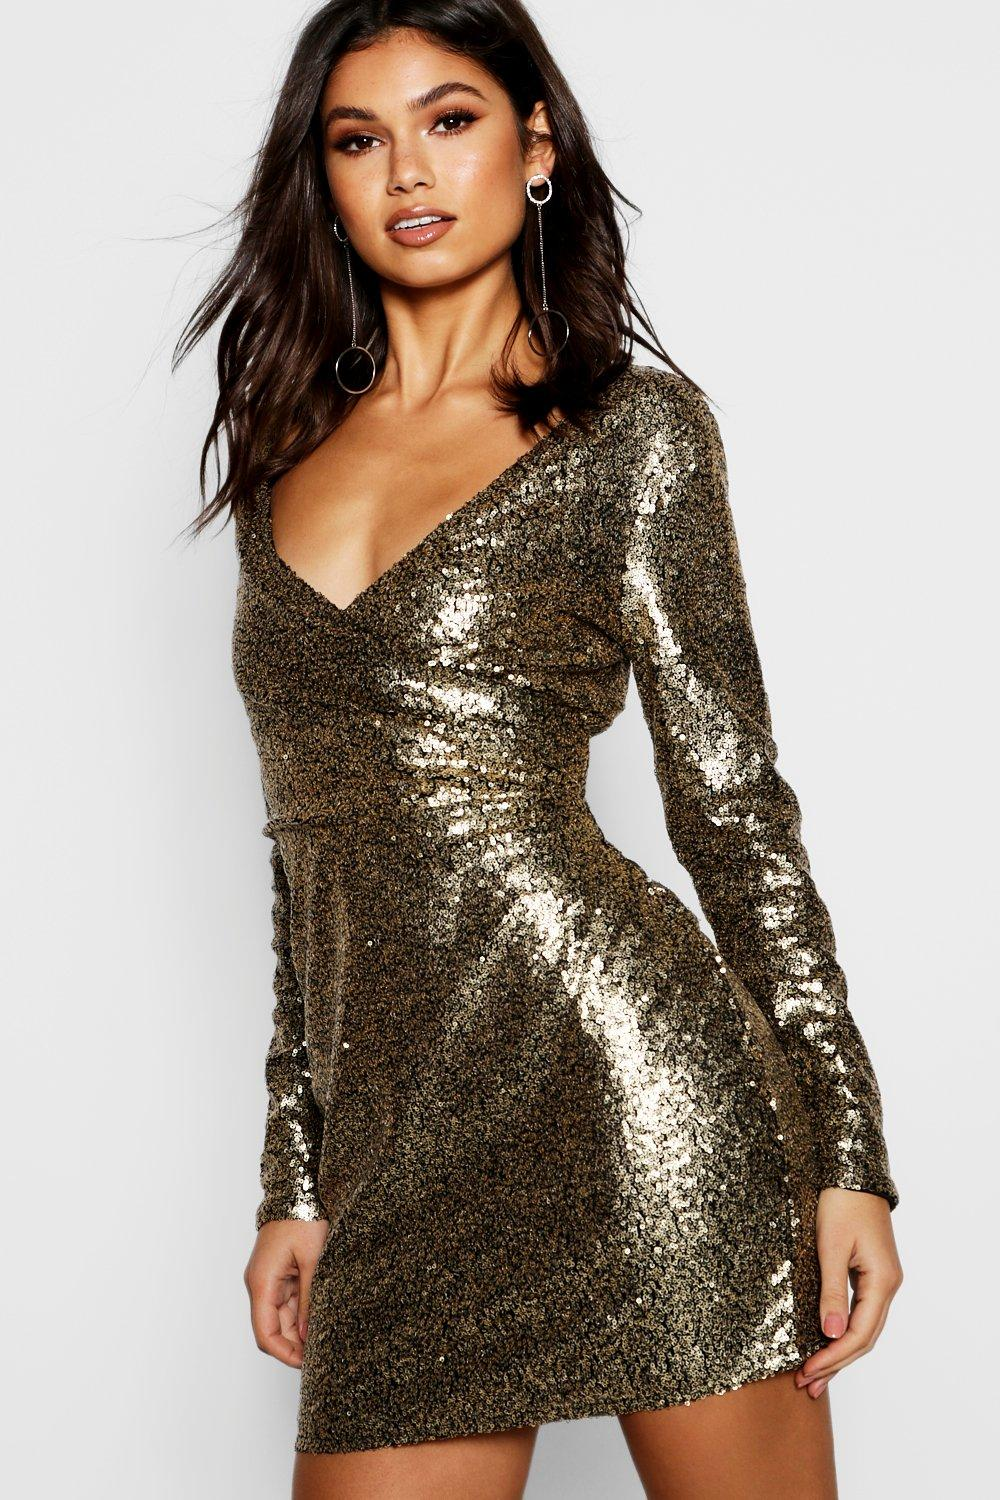 Boutique Anya All Over Sequin Bodycon Dress at boohoo.com